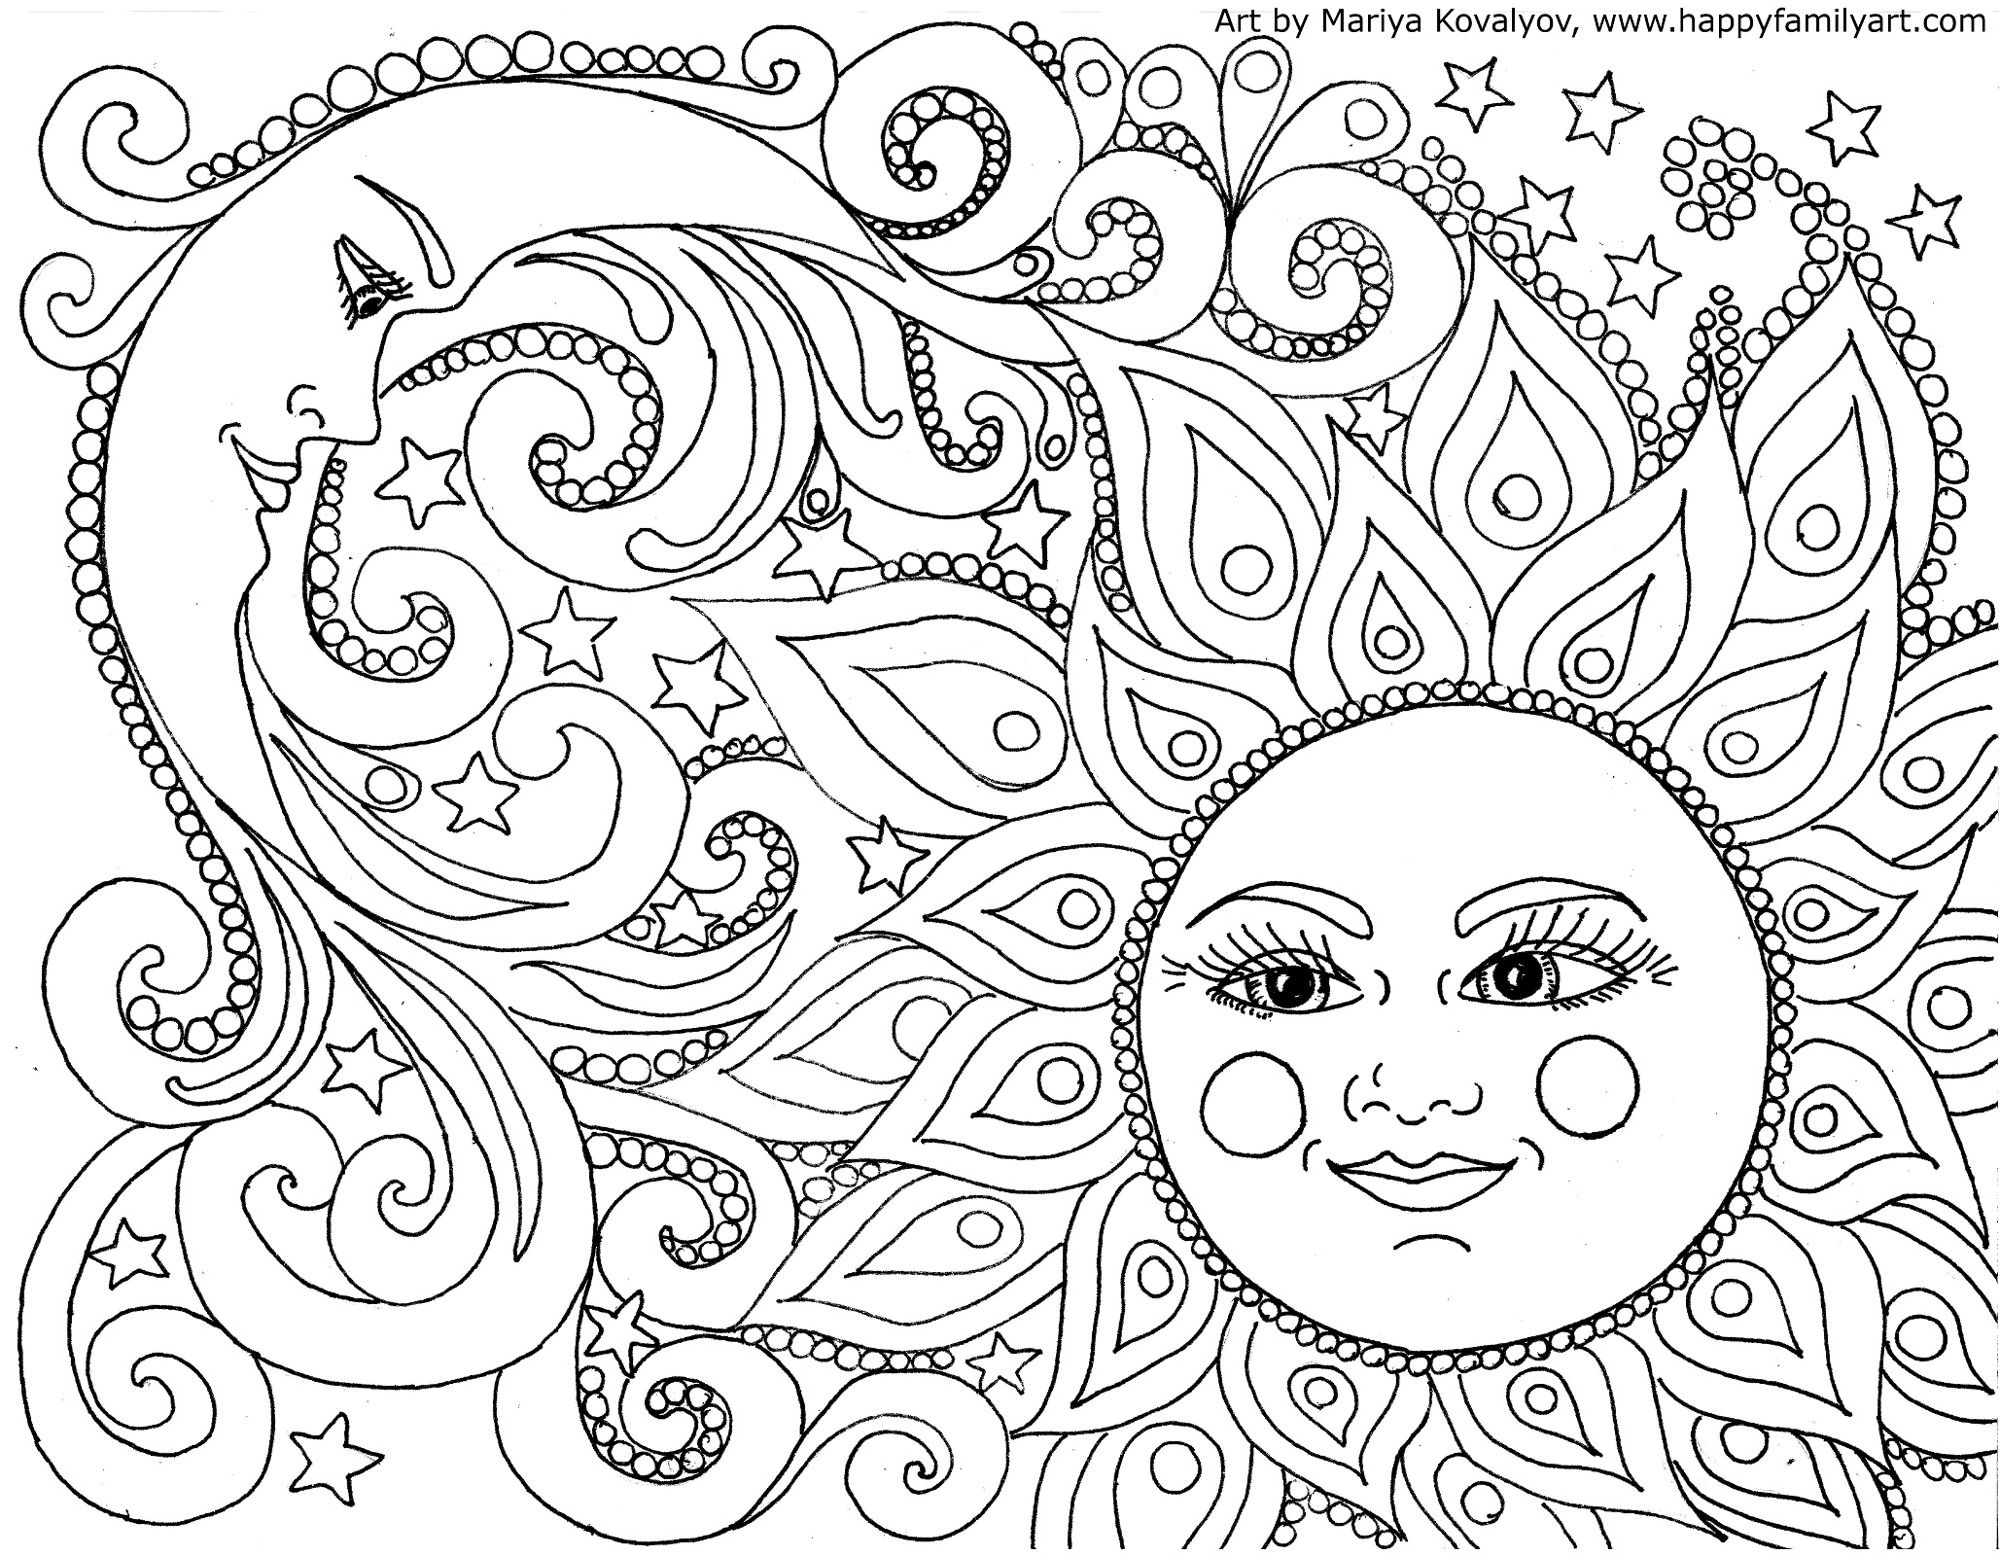 Free coloring pages - Free Adult Colouring Page Free Adult Coloring Page